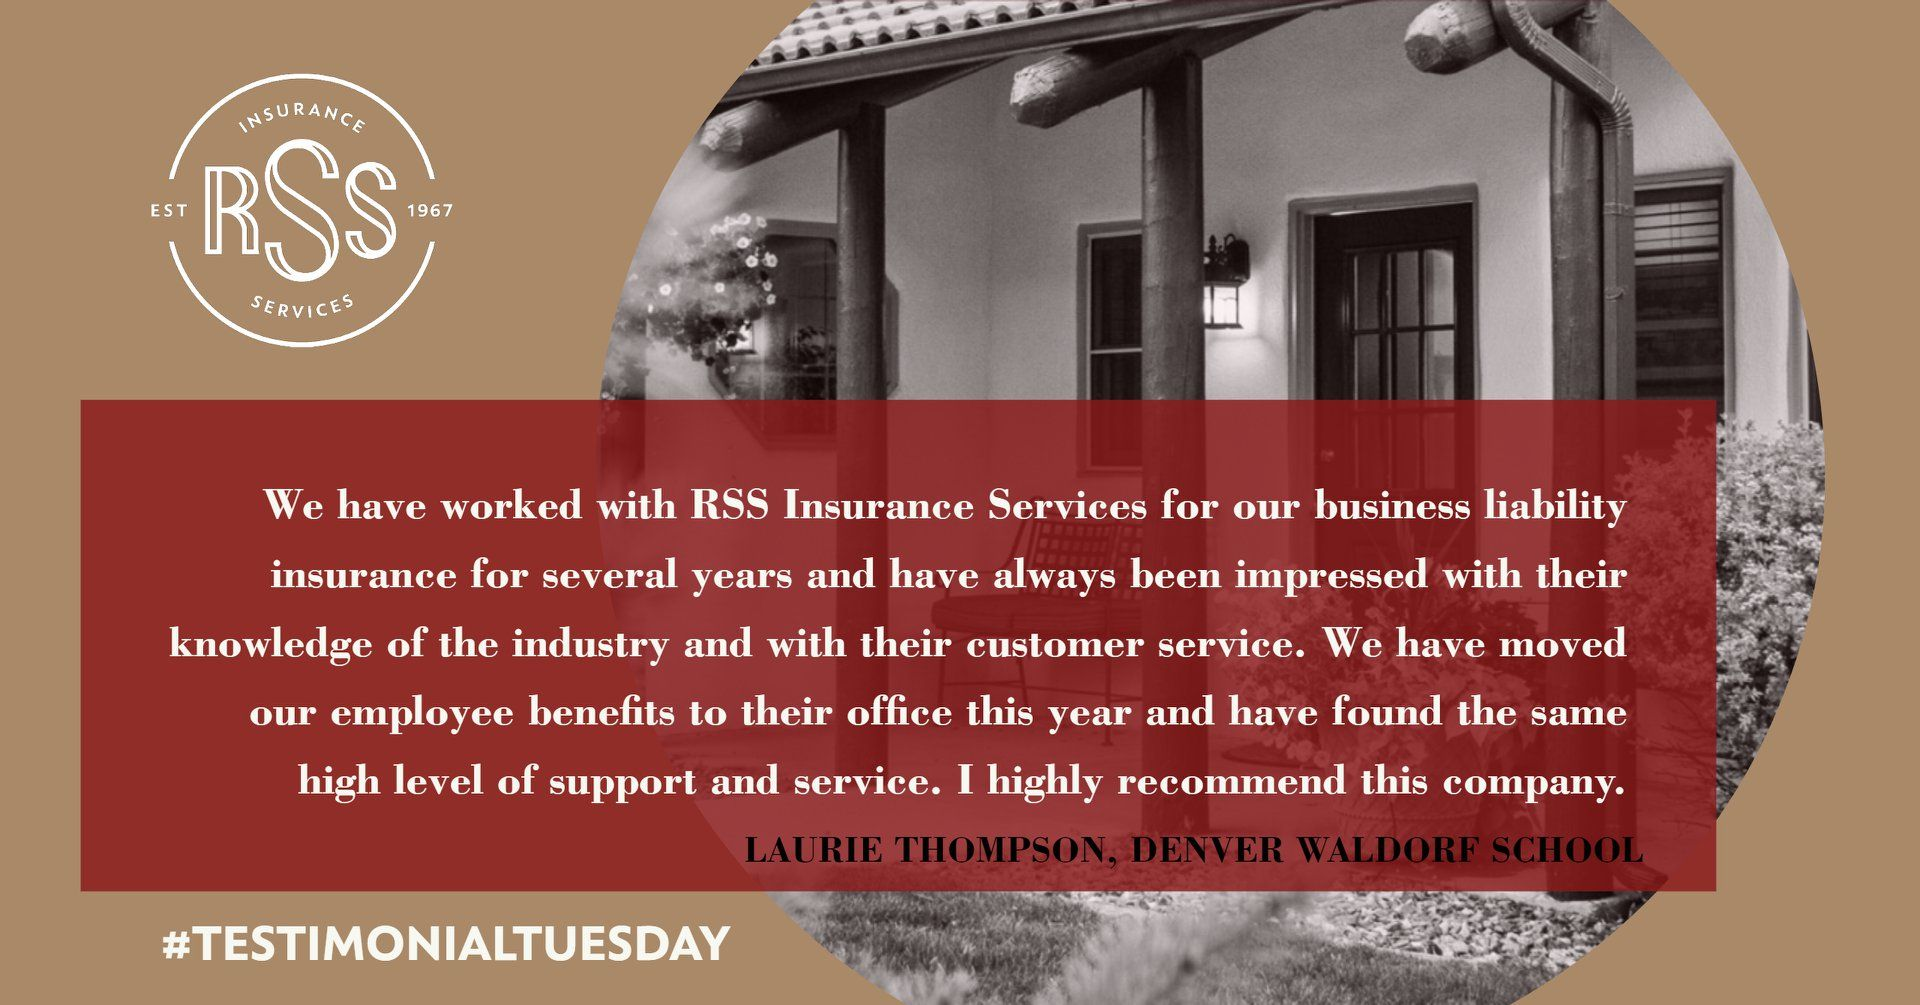 Thanks for the great review Laurie! Through our extensive